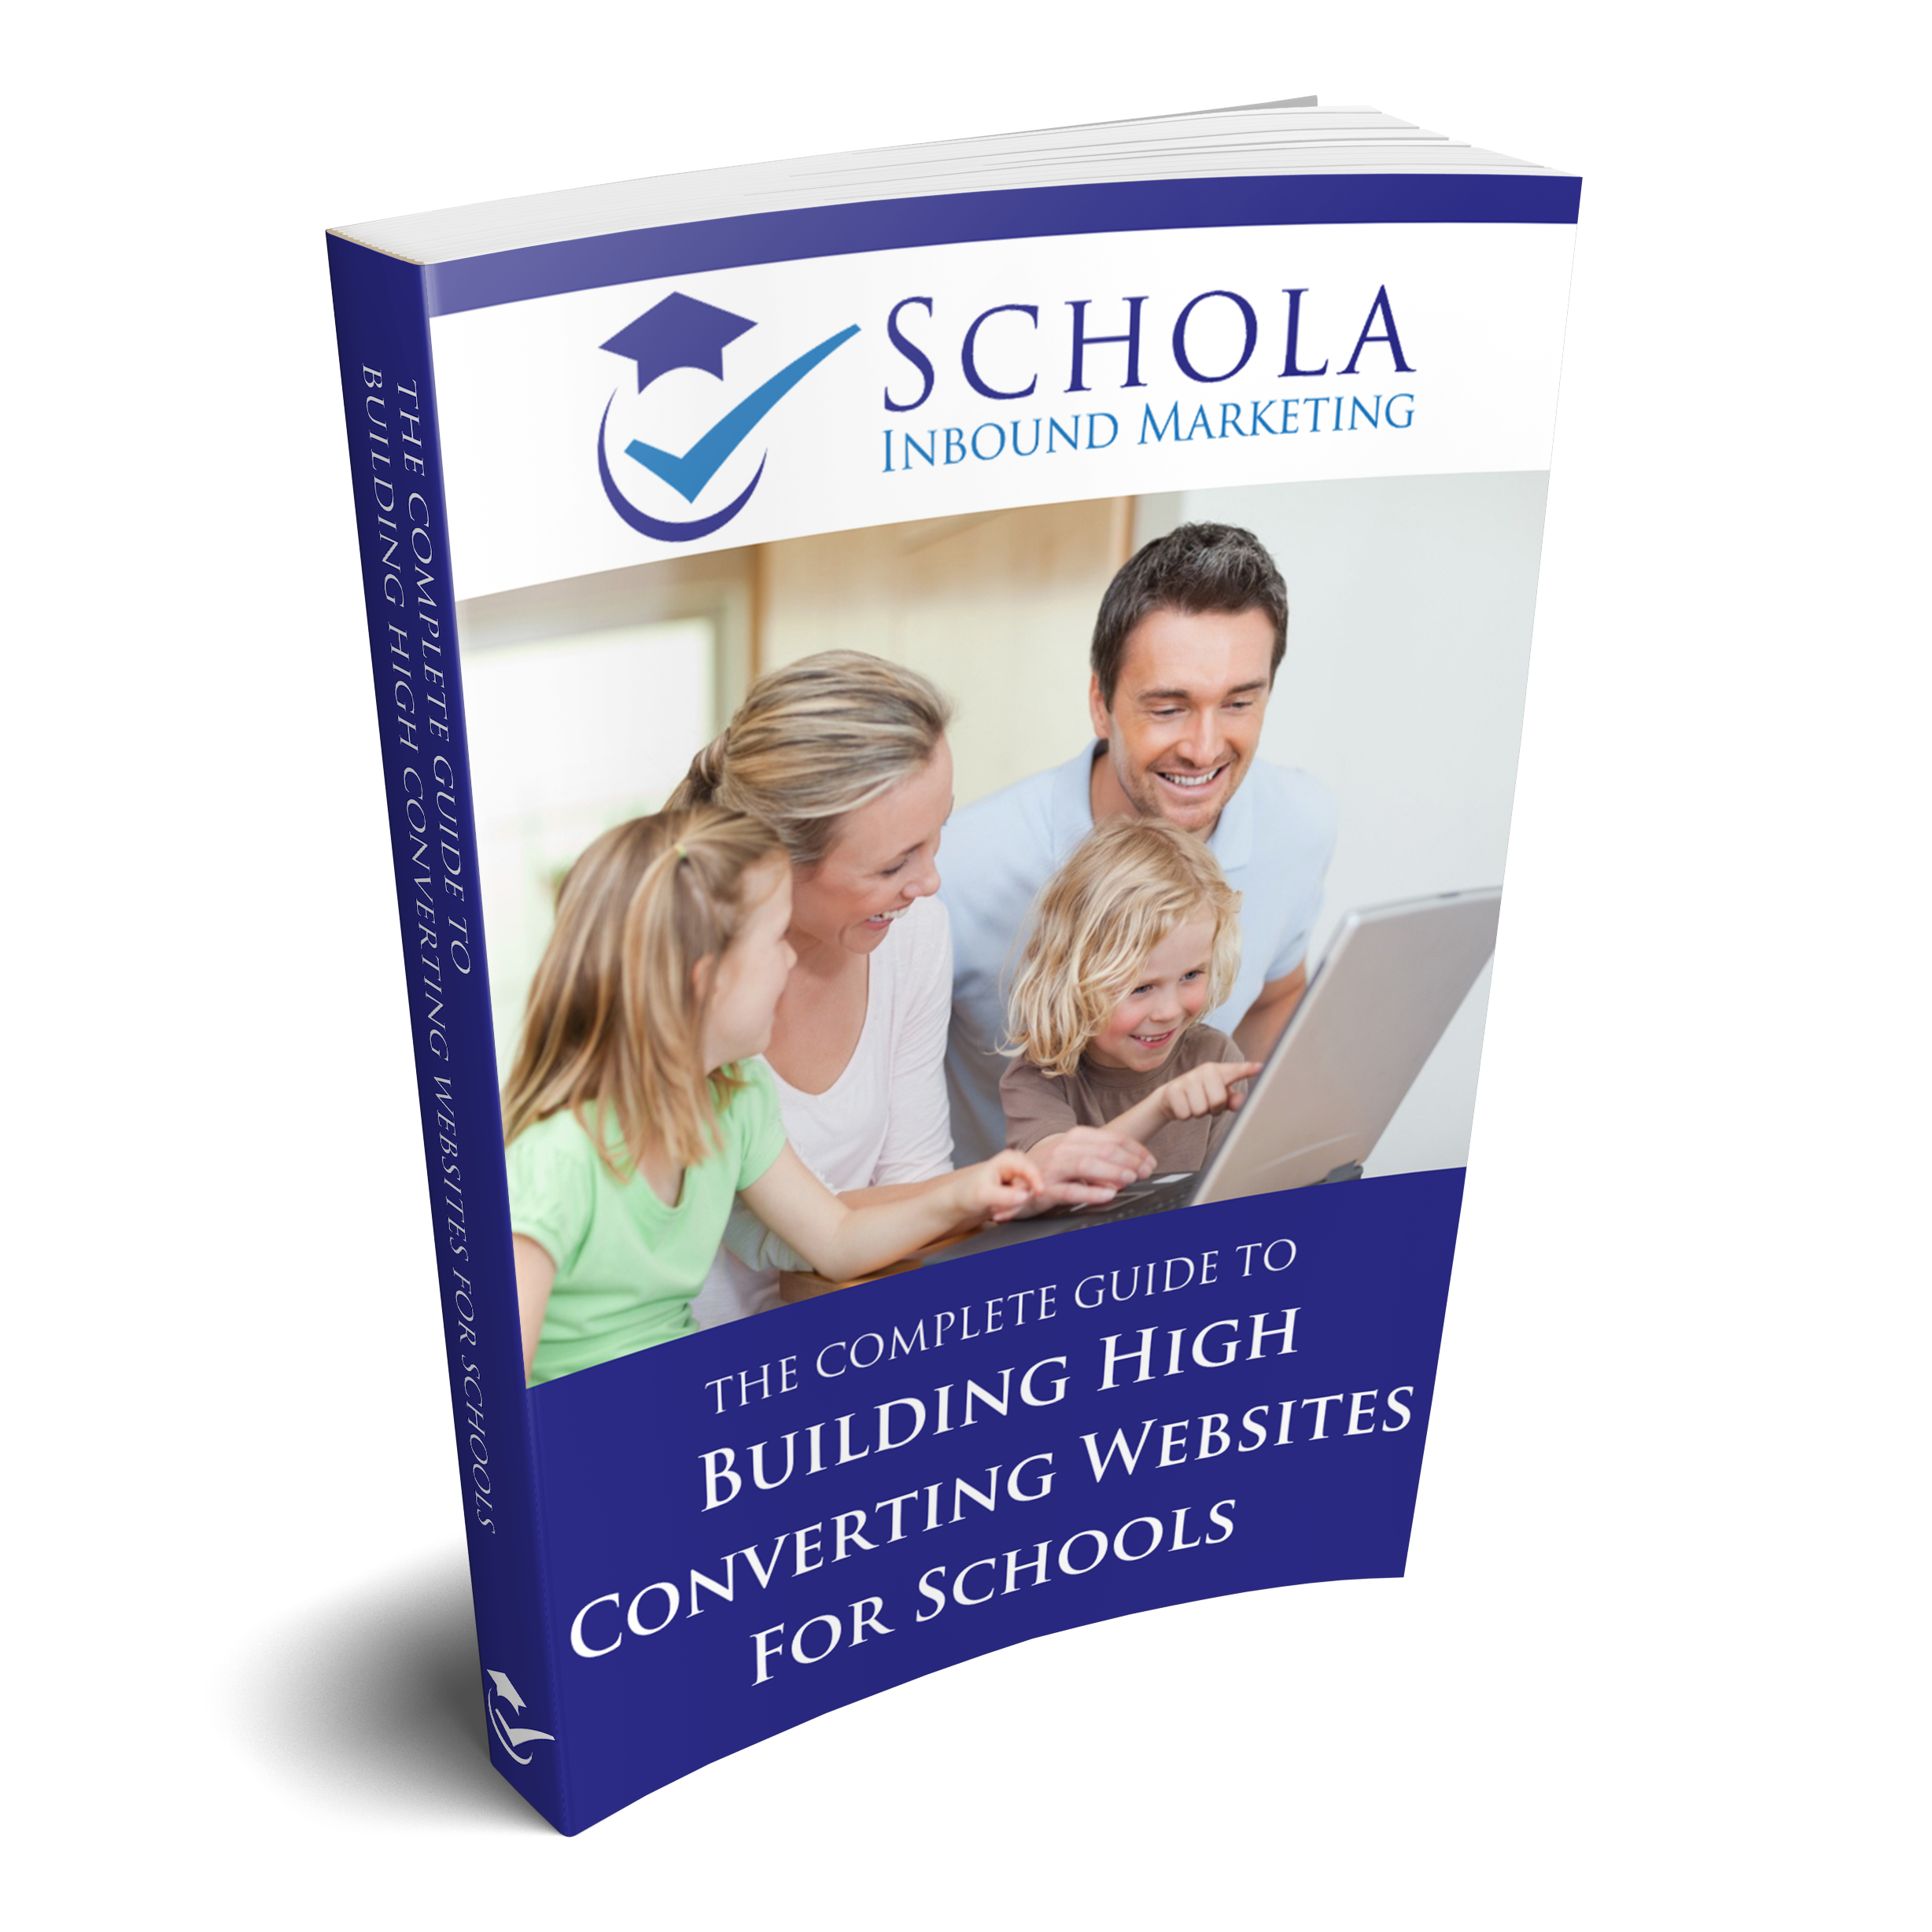 Building High Converting Websites For Schools